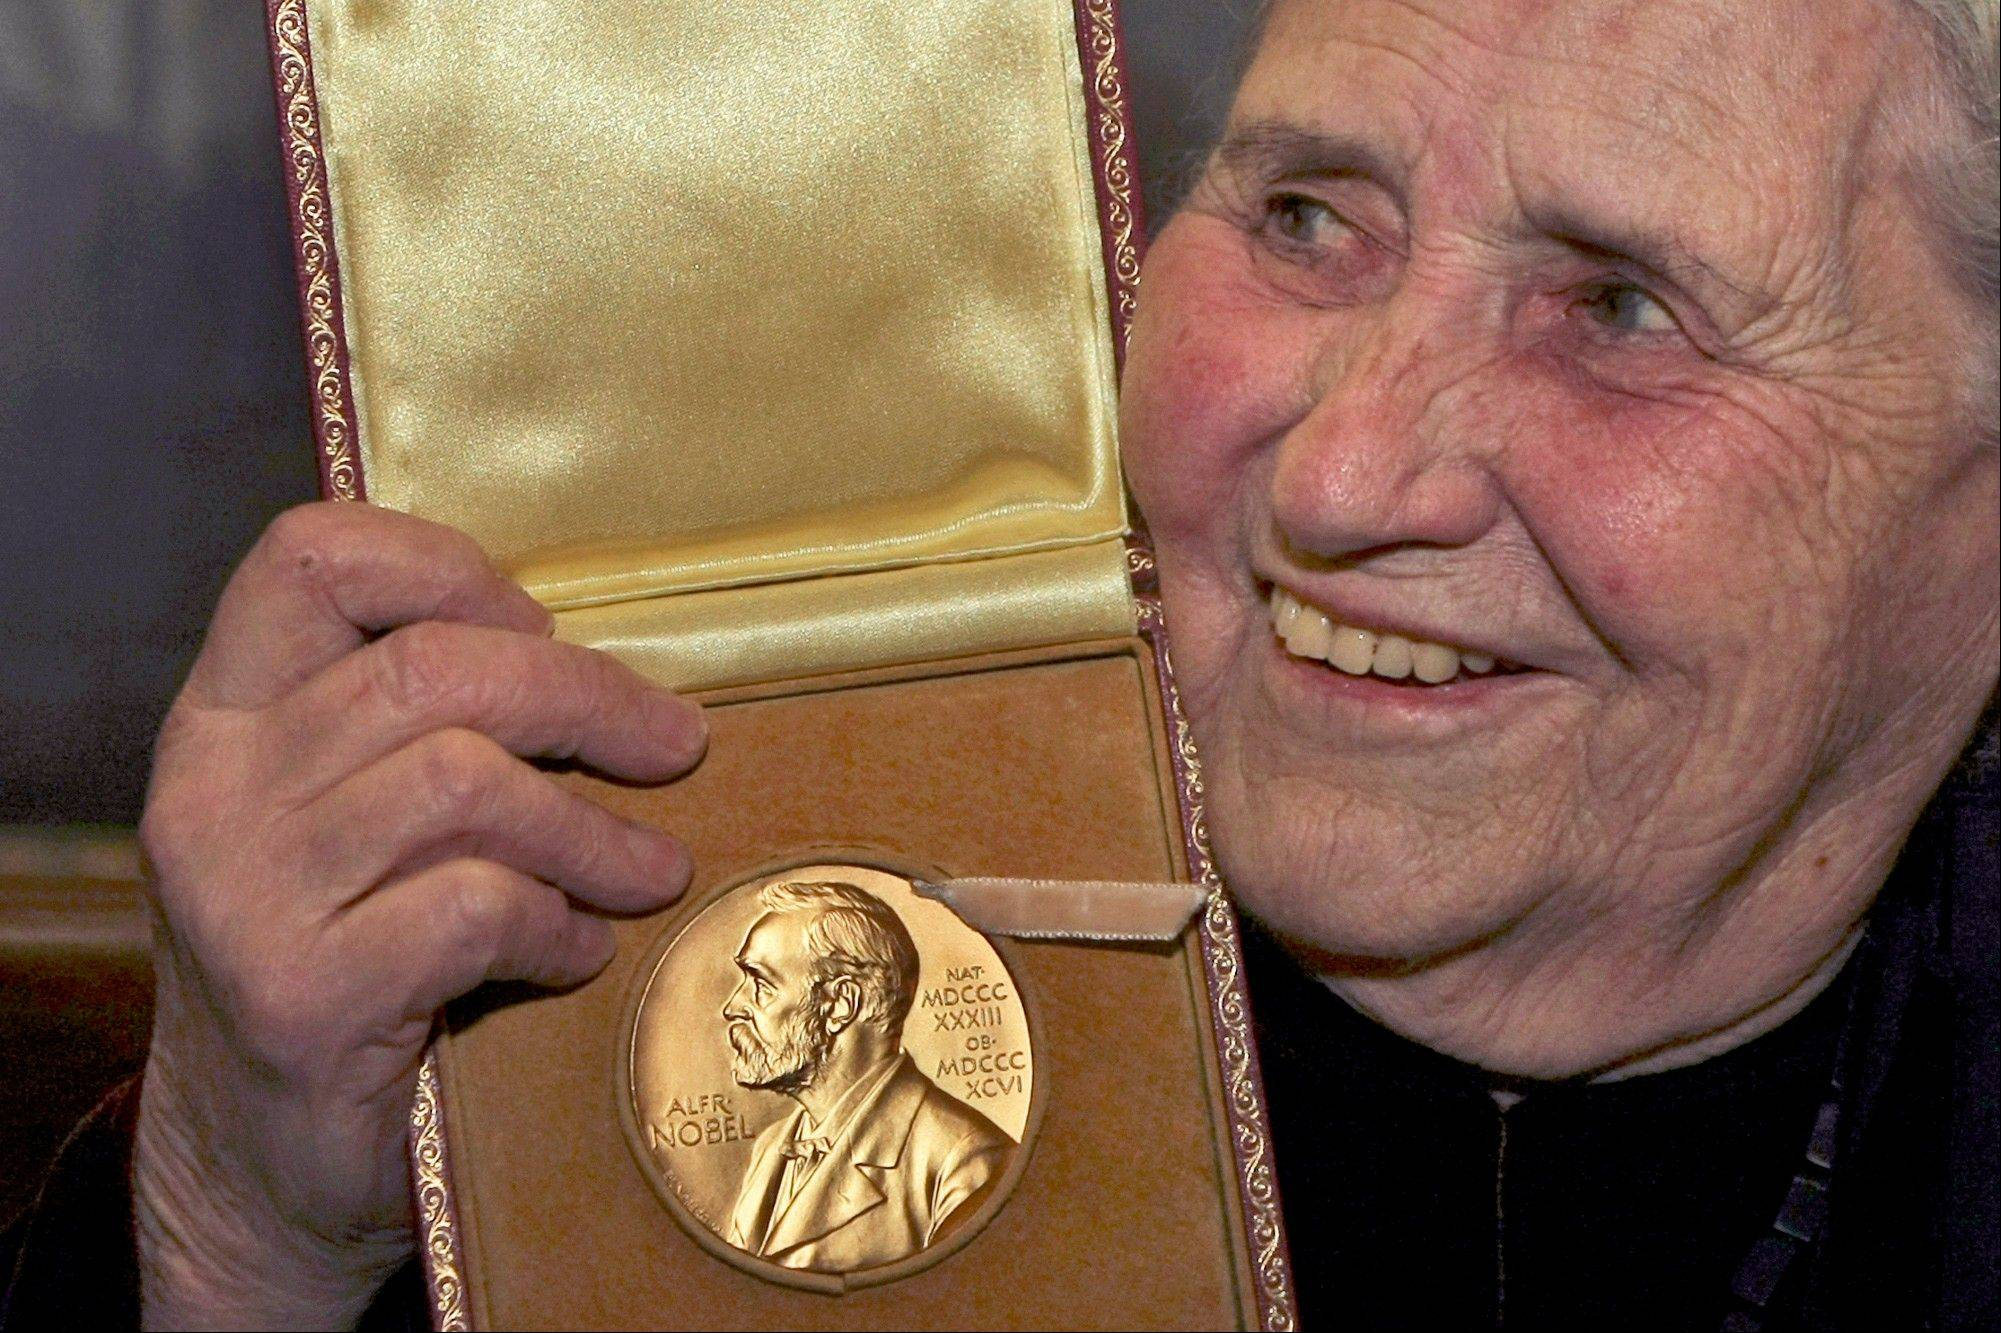 "In this Wednesday, Jan. 30, 2008 file photo, Nobel literature laureate, Doris Lessing holds up the 2007 Nobel Prize for Literature medal after being presented it by the Ambassador of Sweden, Staffan Carlsson, during a ceremony at the Wallace Collection art gallery in London. Doris Lessing, the free-thinking, world-traveling, often-polarizing writer of ""The Golden Notebook"" and dozens of other novels that reflected her own improbable journey across the former British empire, has died, early Sunday, Nov. 17, 2013. She was 94. The author of more than 50 works of fiction, nonfiction and poetry, Lessing explored topics ranging from colonial Africa to dystopian Britain, from the mystery of being female to the unknown worlds of science fiction."